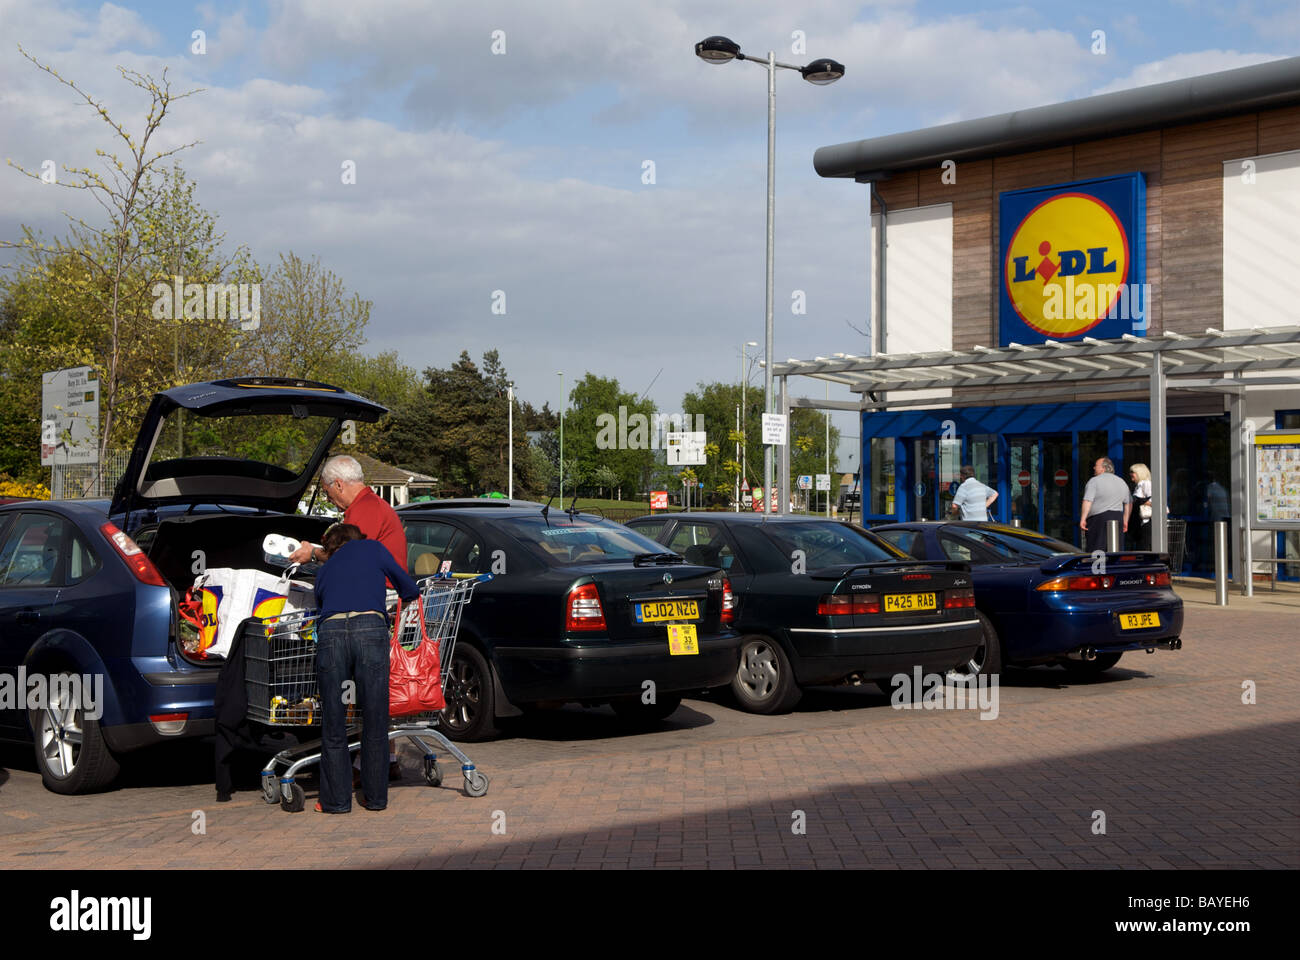 Lidl supermarket, Ipswich, Suffolk, UK. - Stock Image